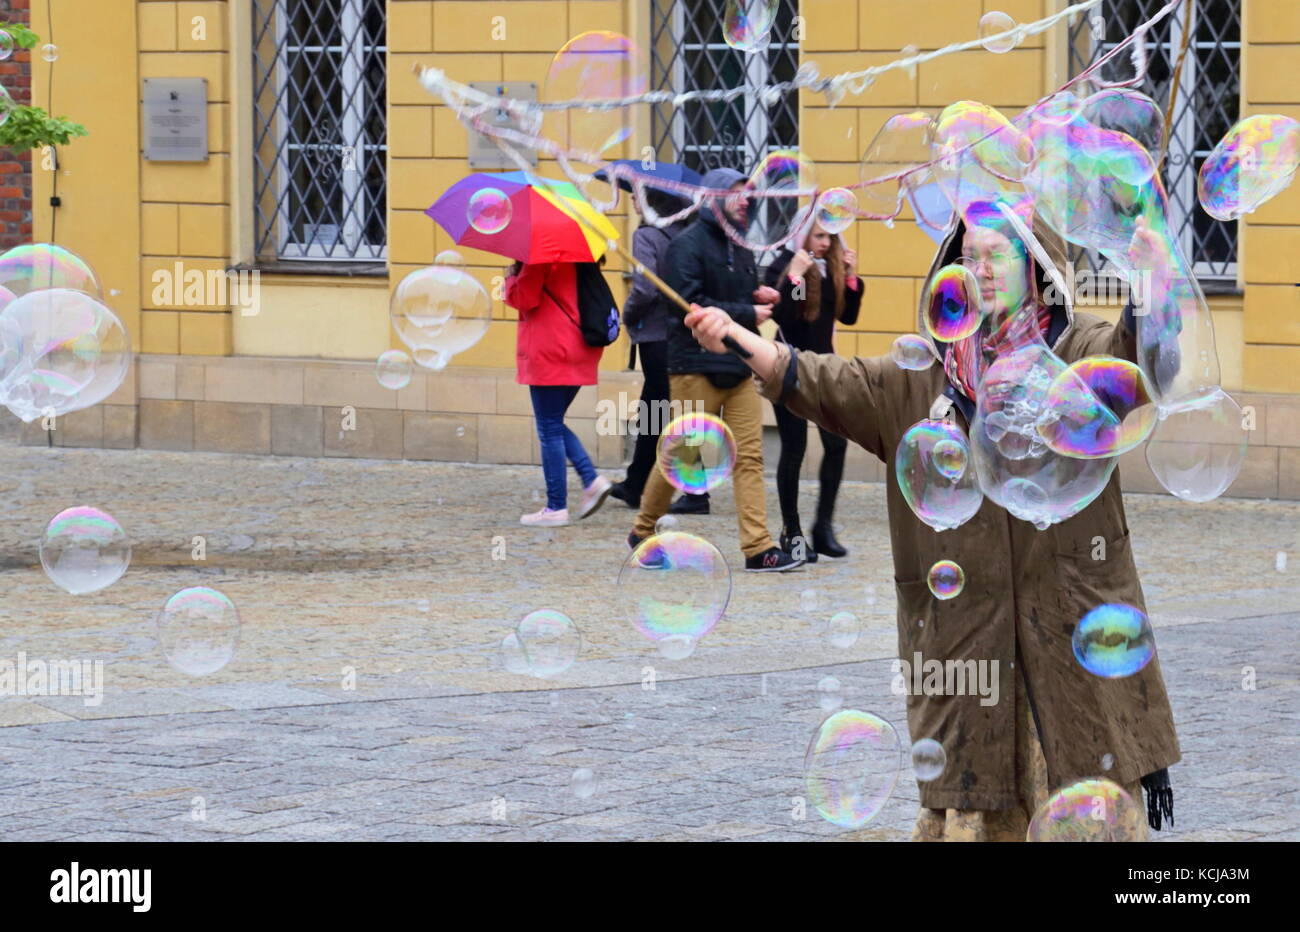 Woman performing soap bubbles spectacle in Wroclaw, Poland - Stock Image